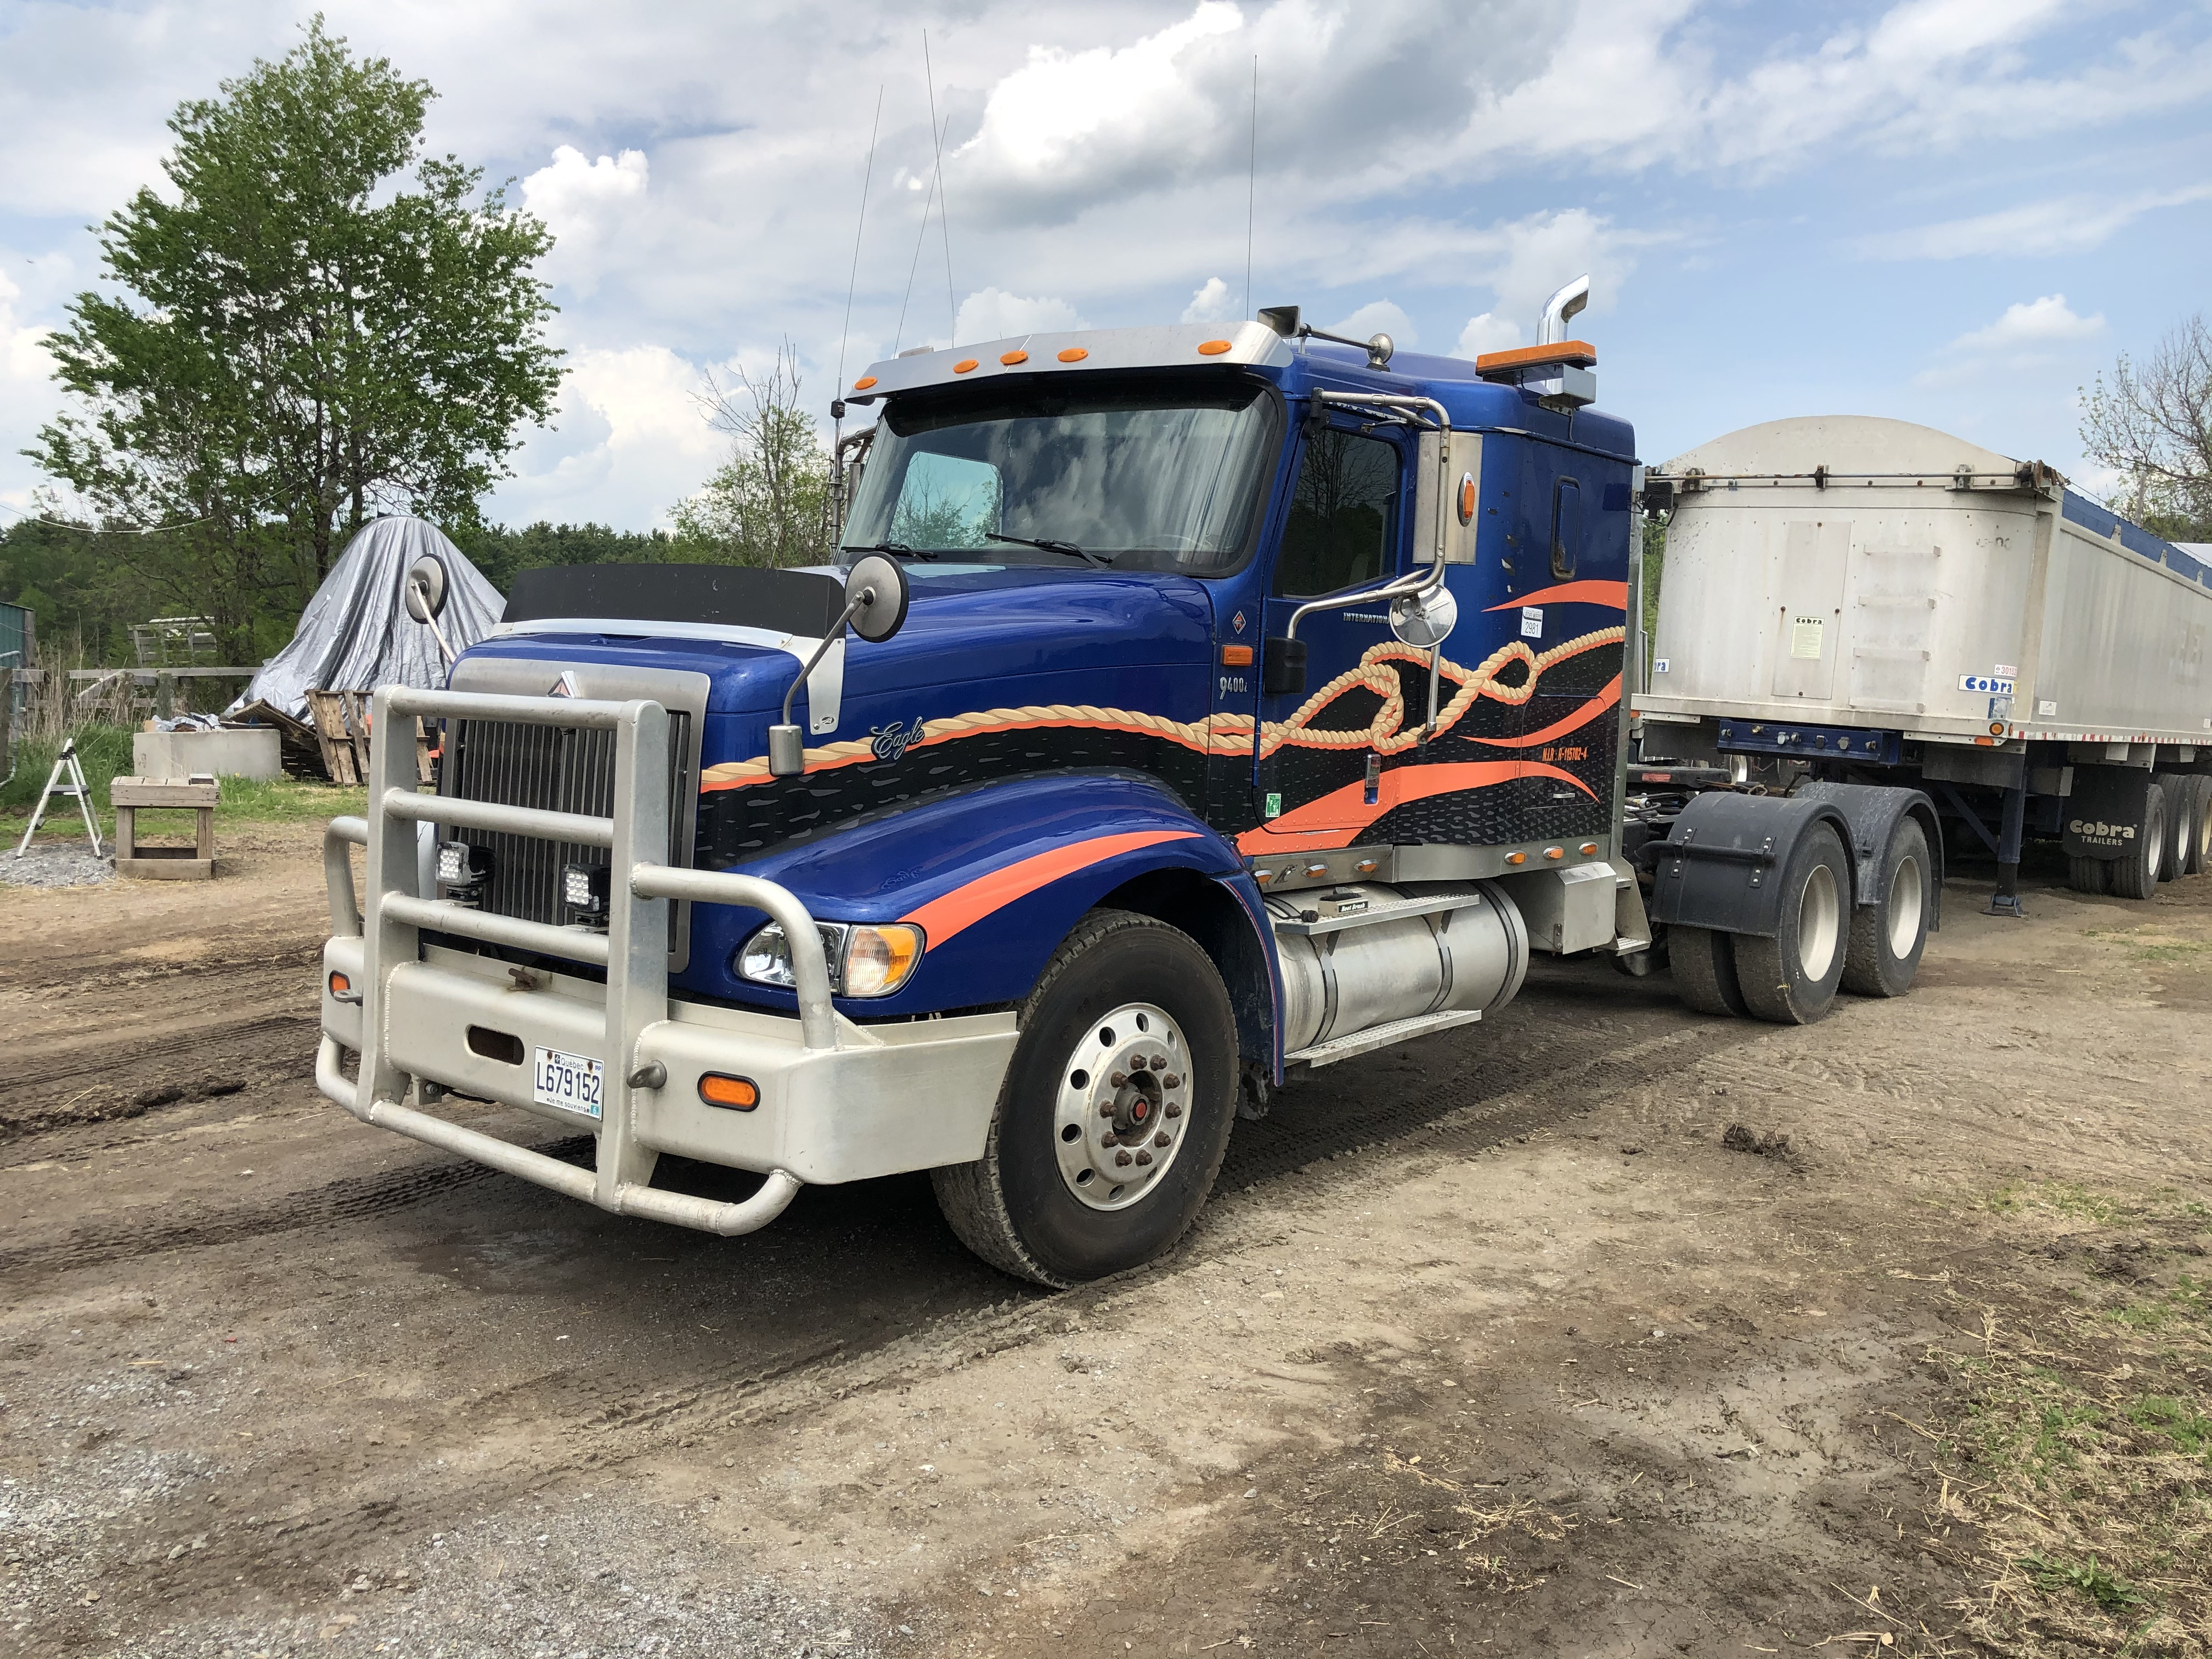 2007 International 9400 Wet line kit